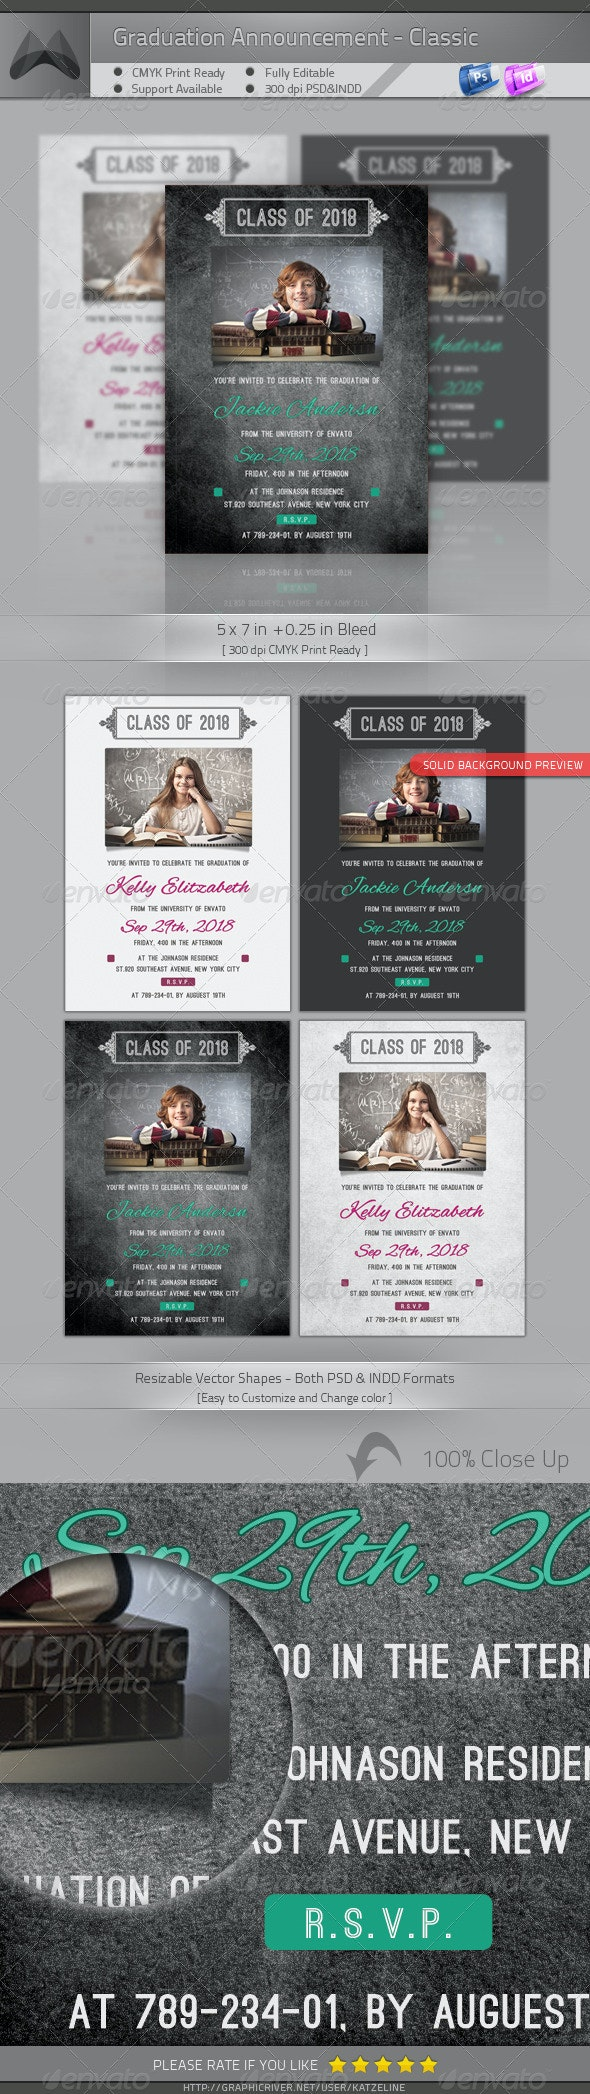 Graduation Announcement - Classic - Invitations Cards & Invites